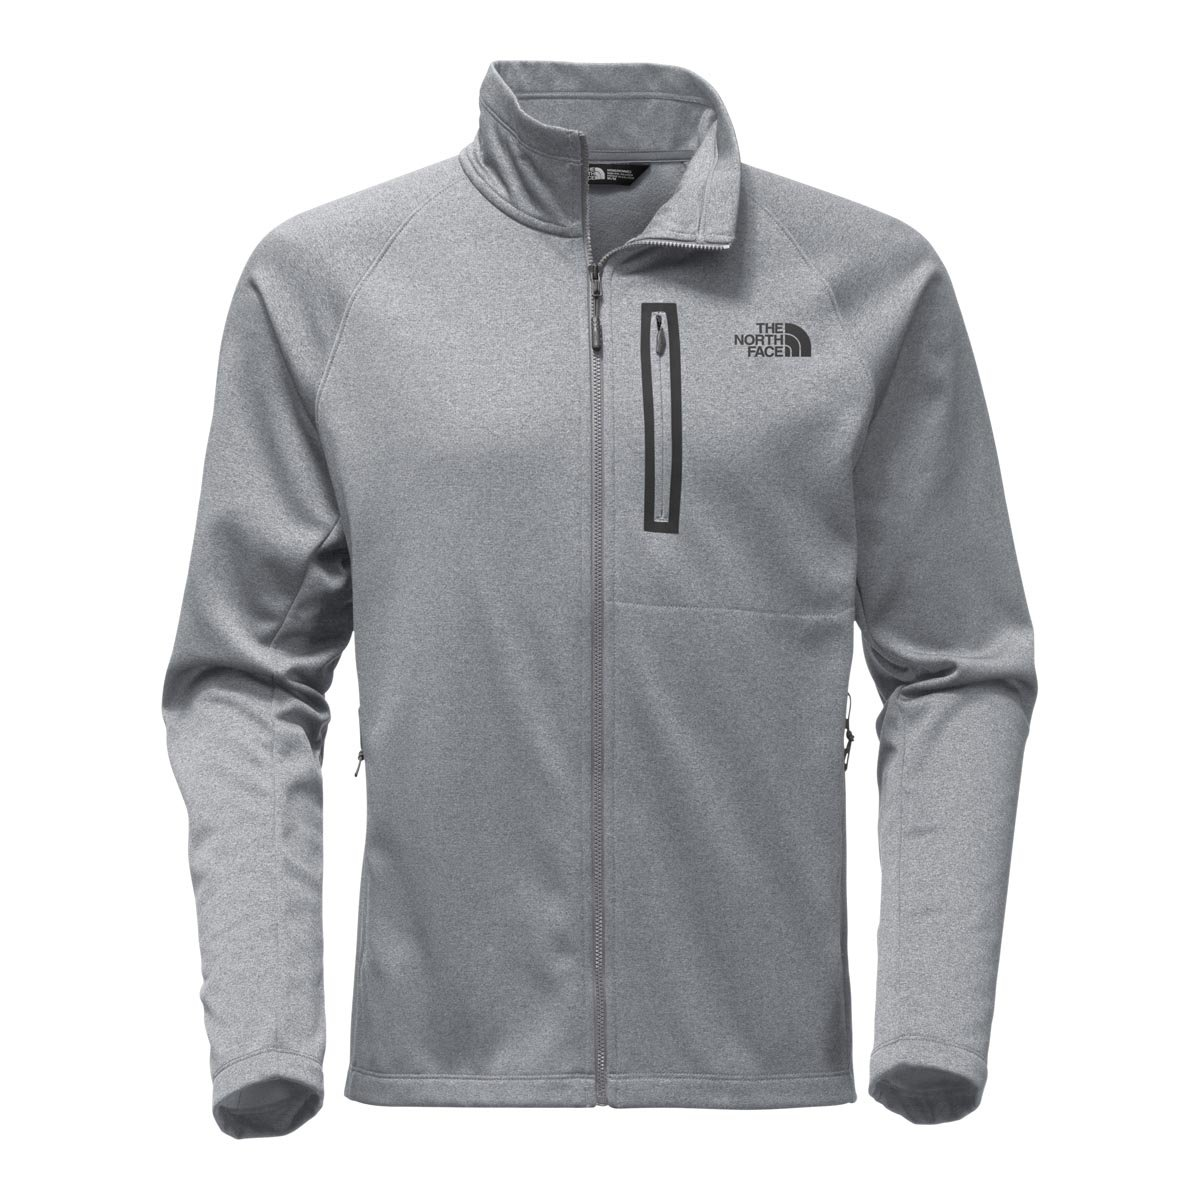 The North Face Men's Canyonlands Full Zip TNF Medium Grey Heather - XL by The North Face